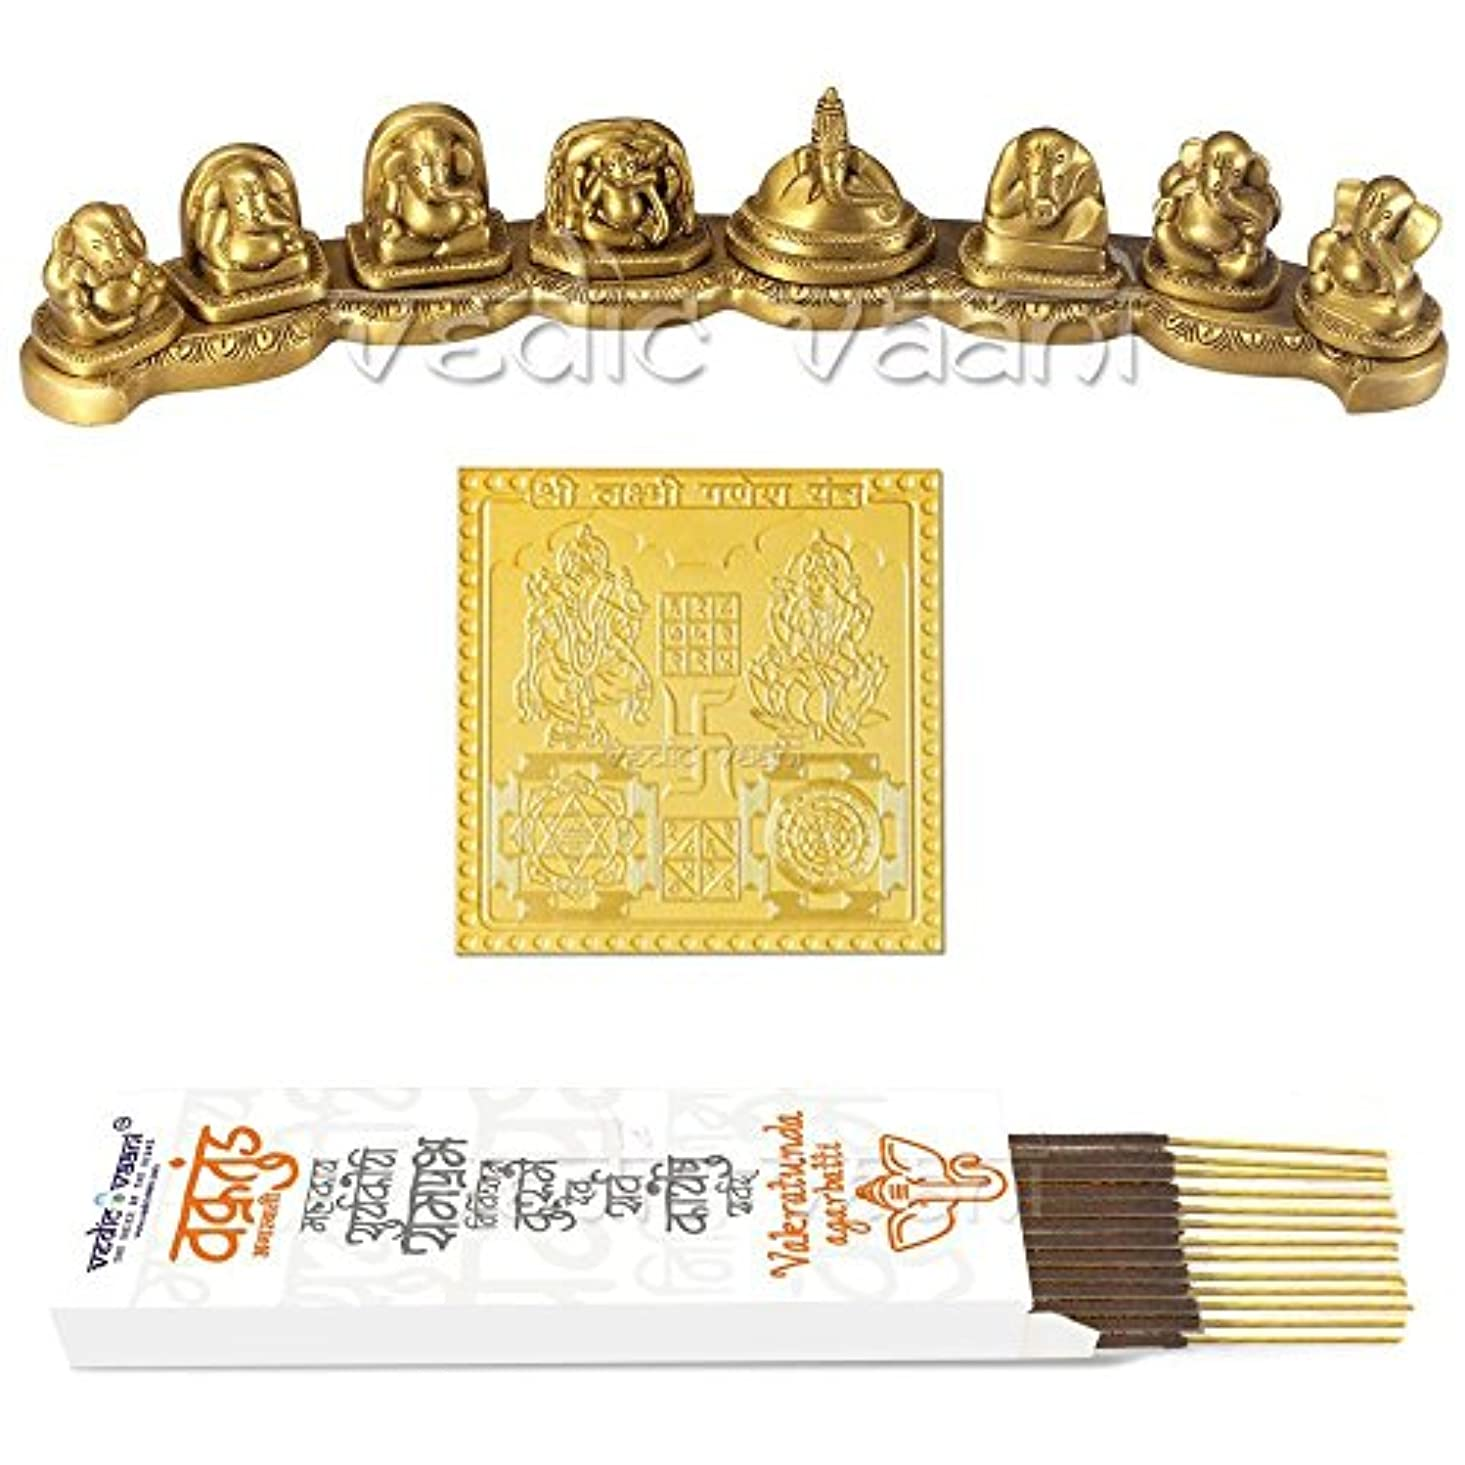 船員抑止する補体Ashtavinayak Ganpati Bappa Idol In Brass WithヤントラとVakratund Incense Sticks – Vedic Vaani